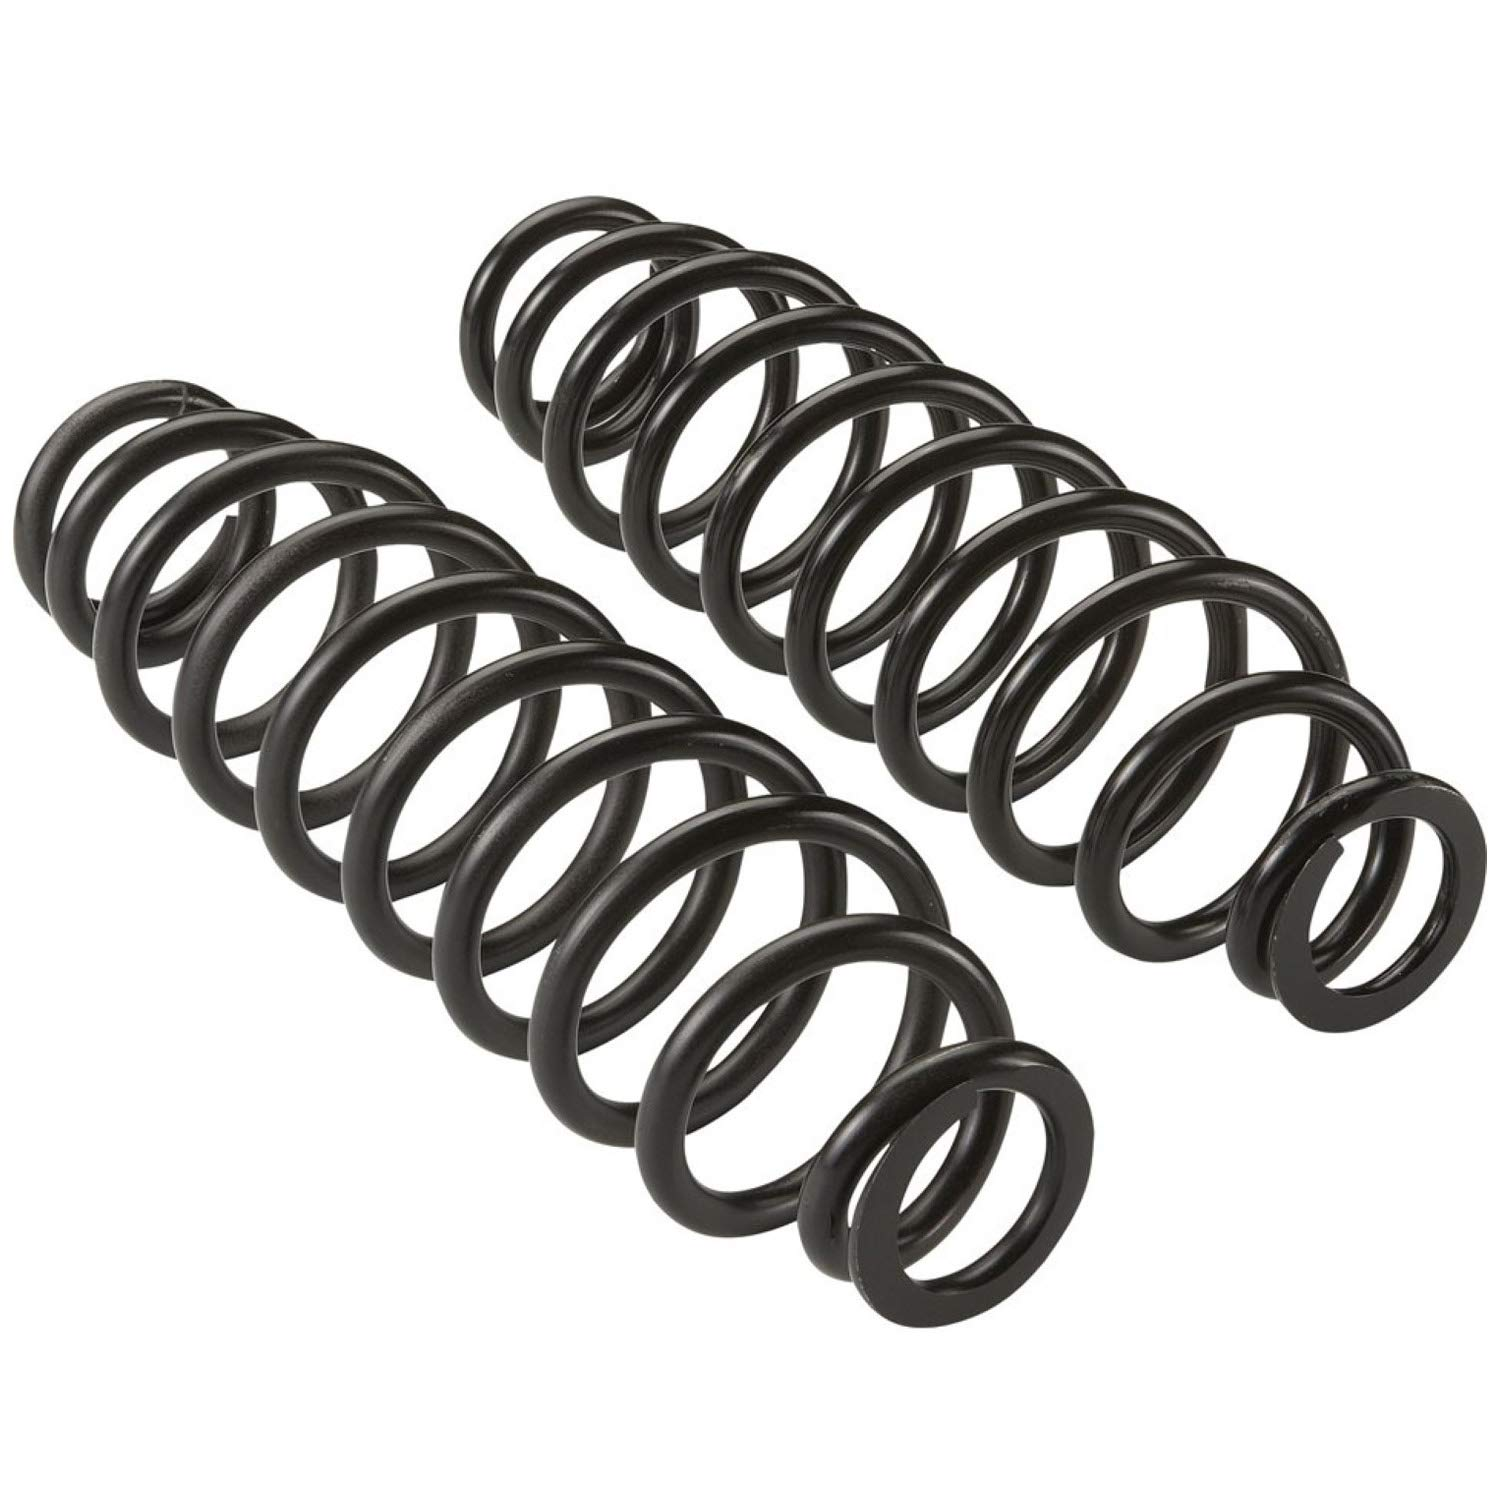 New Genuine Polaris Ranger Accessories / RANGER 2008 / HD Spring Kit Front / pt # 2876758